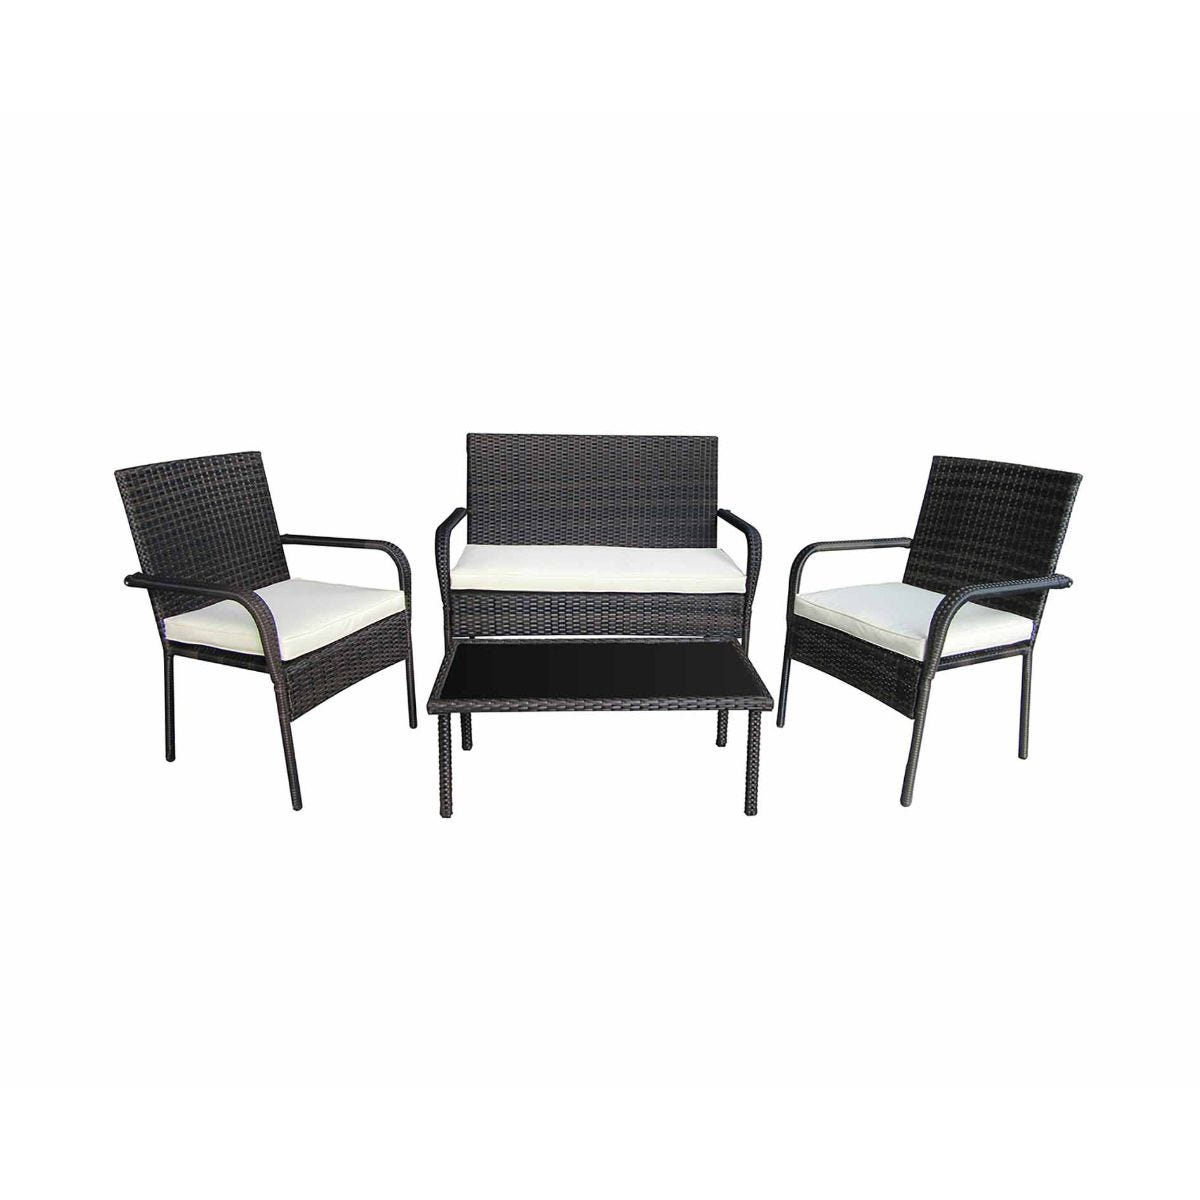 Charles Bentley 4 Piece Rattan Garden Lounge Set, Brown